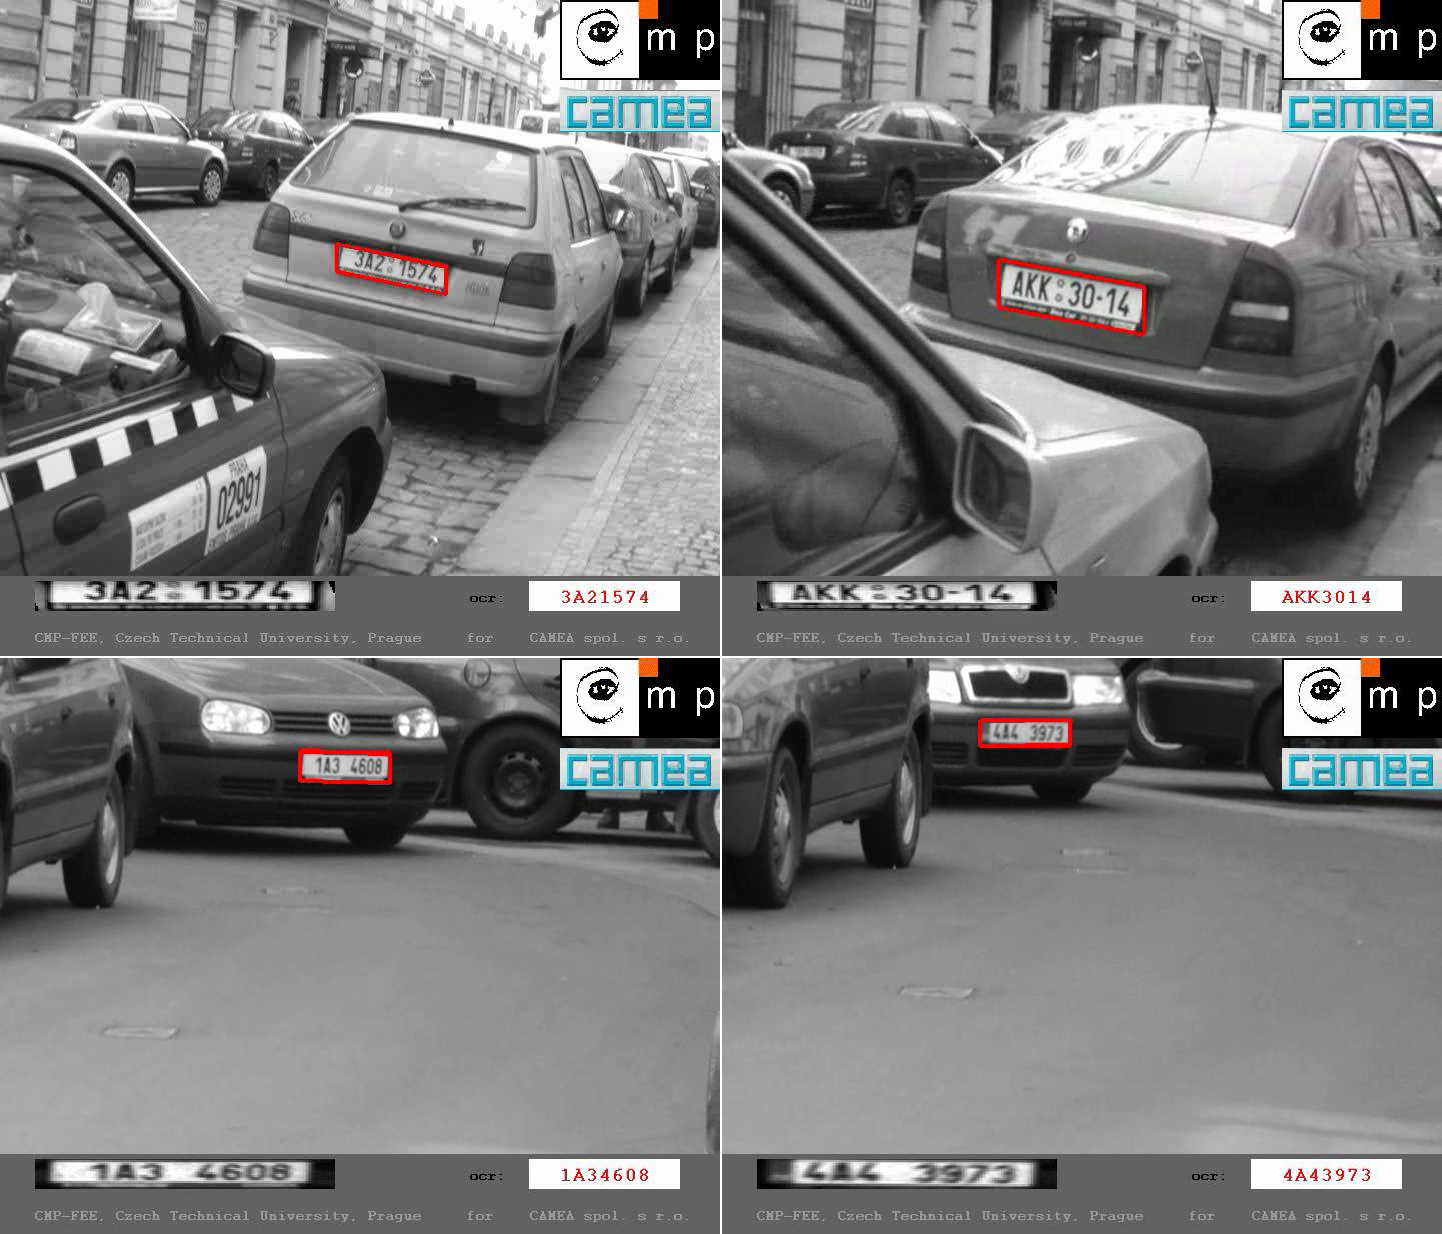 Industry application for license plate recognition. Videos are available at  http://cmp.felk.cvut.cz/cmp/courses/X33KUI/Videos/RP_recognition.